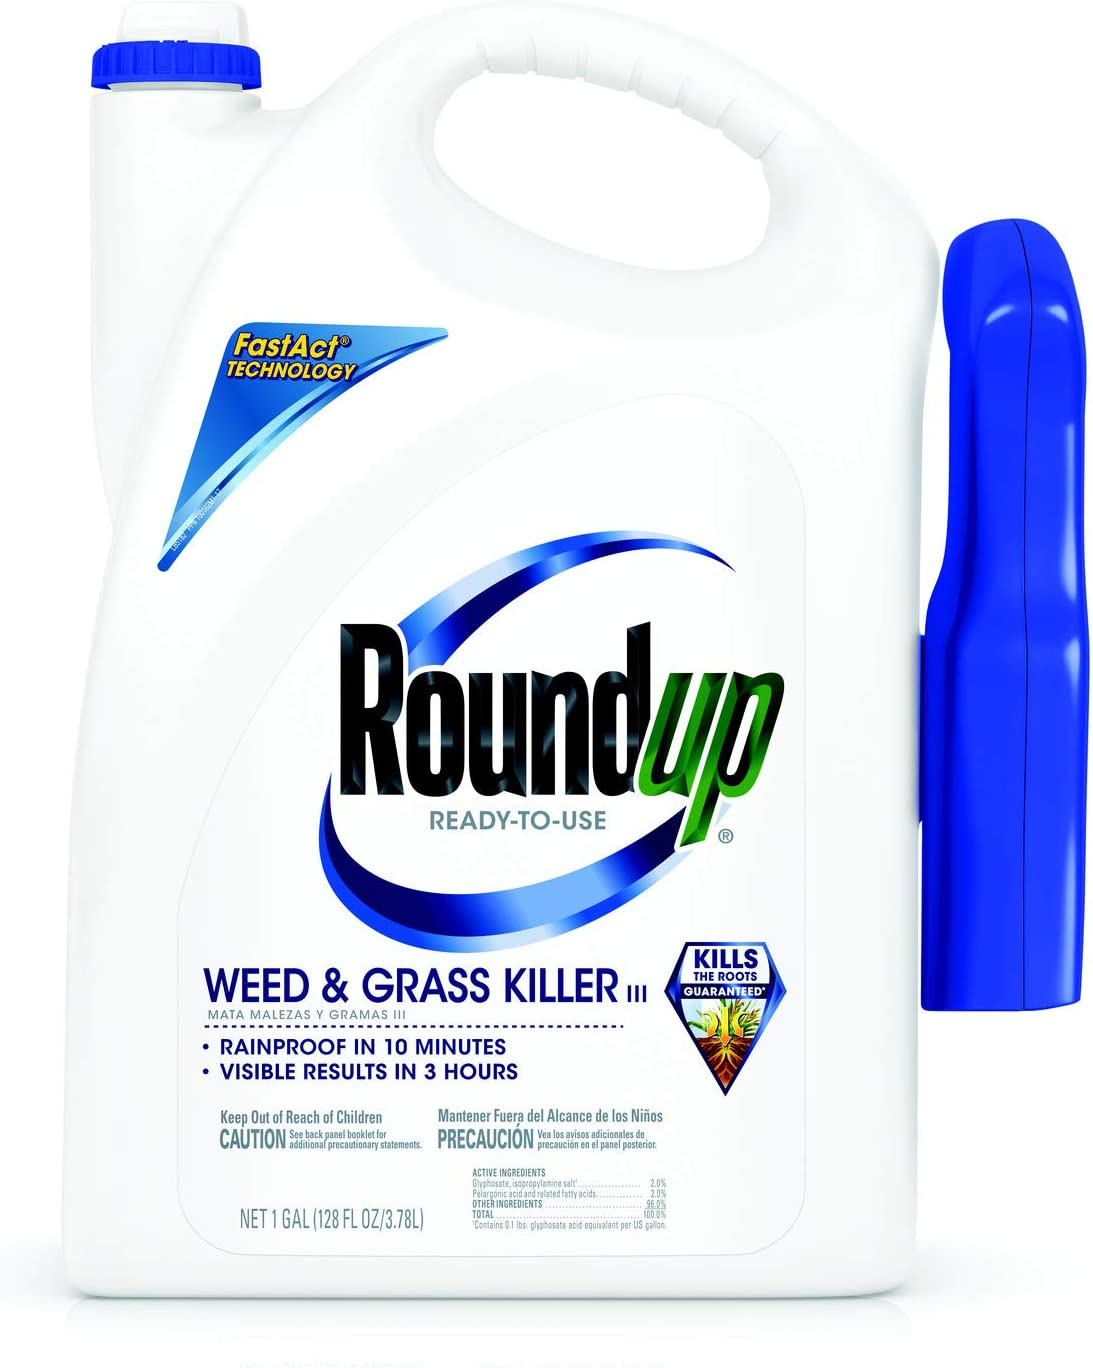 Roundup Ready-To-Use Weed & Grass Killer III Trigger Sprayer, 1 gal.